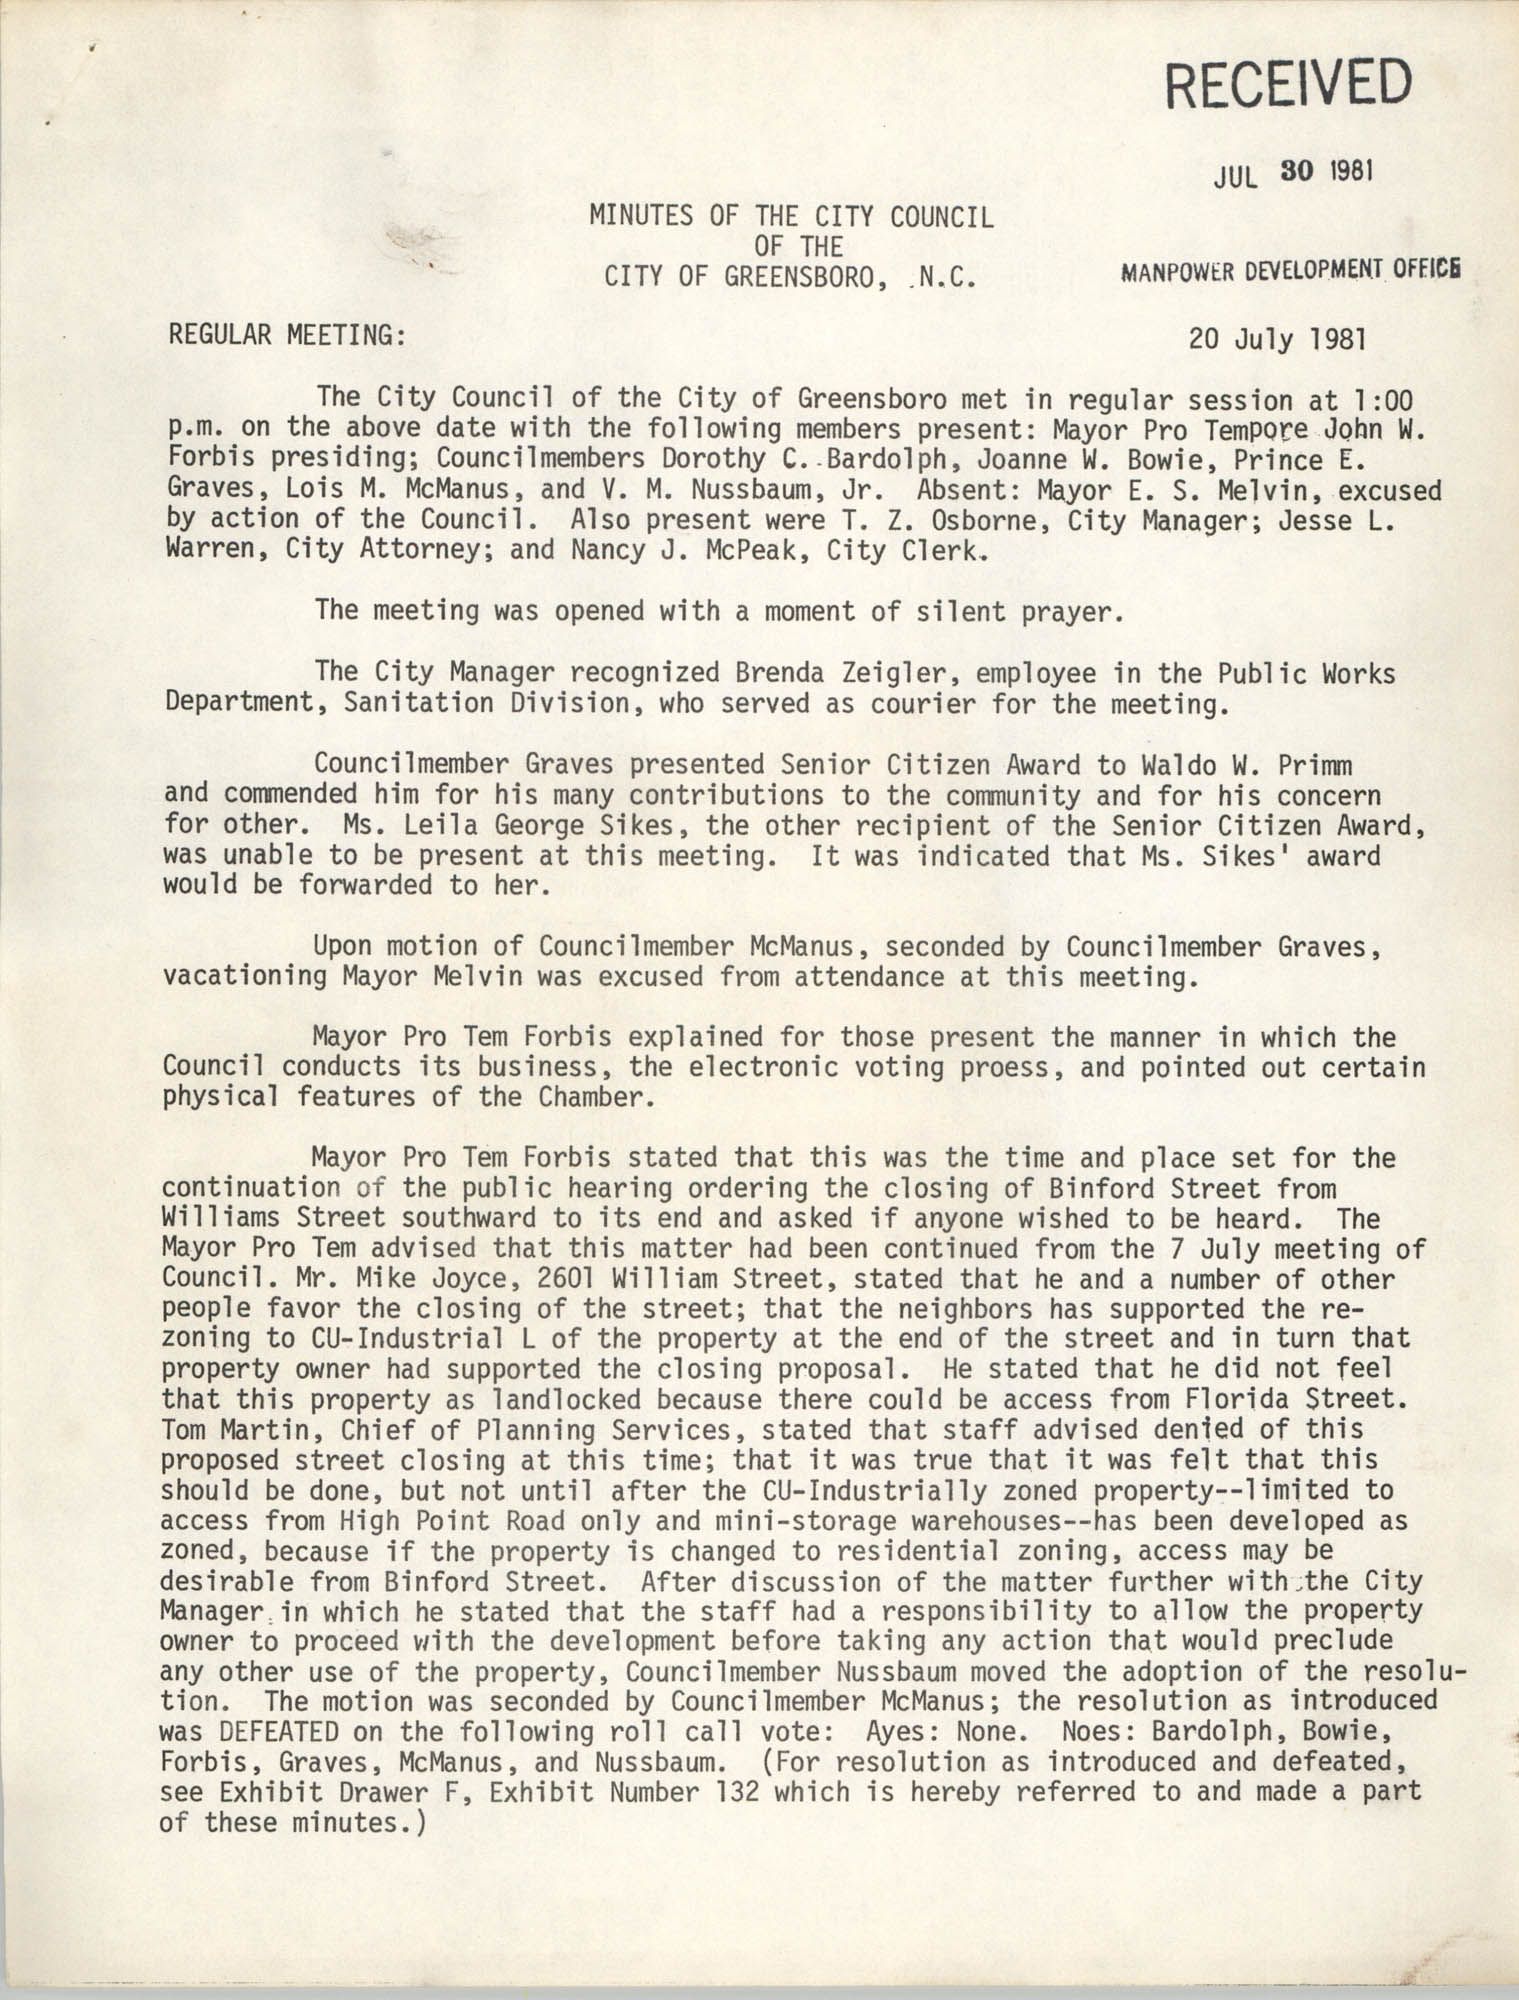 Minutes of the City Council of the City of Greensboro, N.C., July 20, 1981